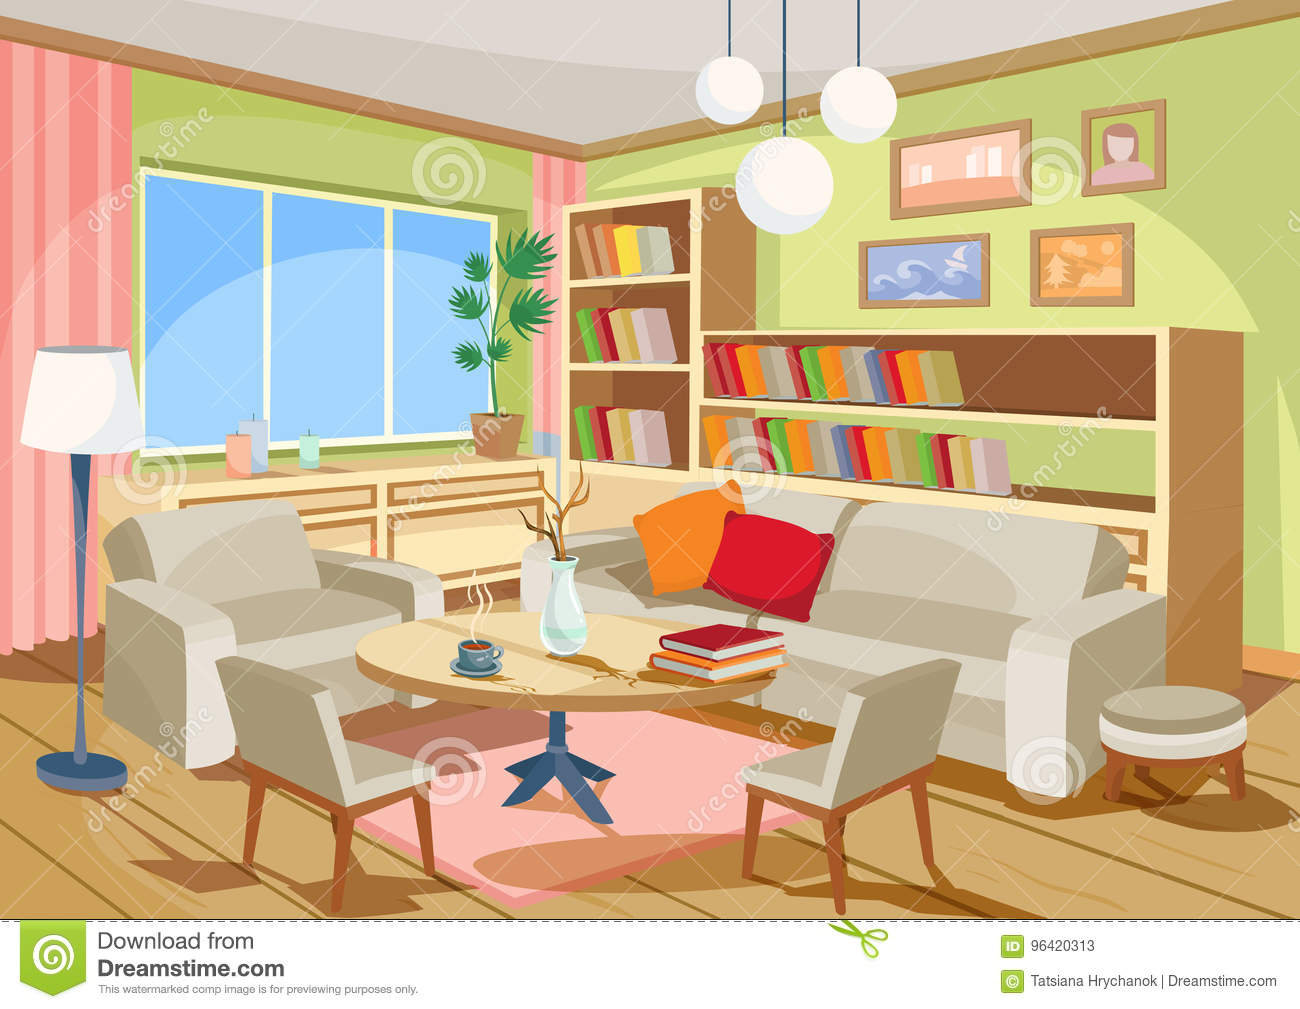 Terrific Vector Illustration Of A Cozy Cartoon Interior Of A Home Interior Design Ideas Gresisoteloinfo